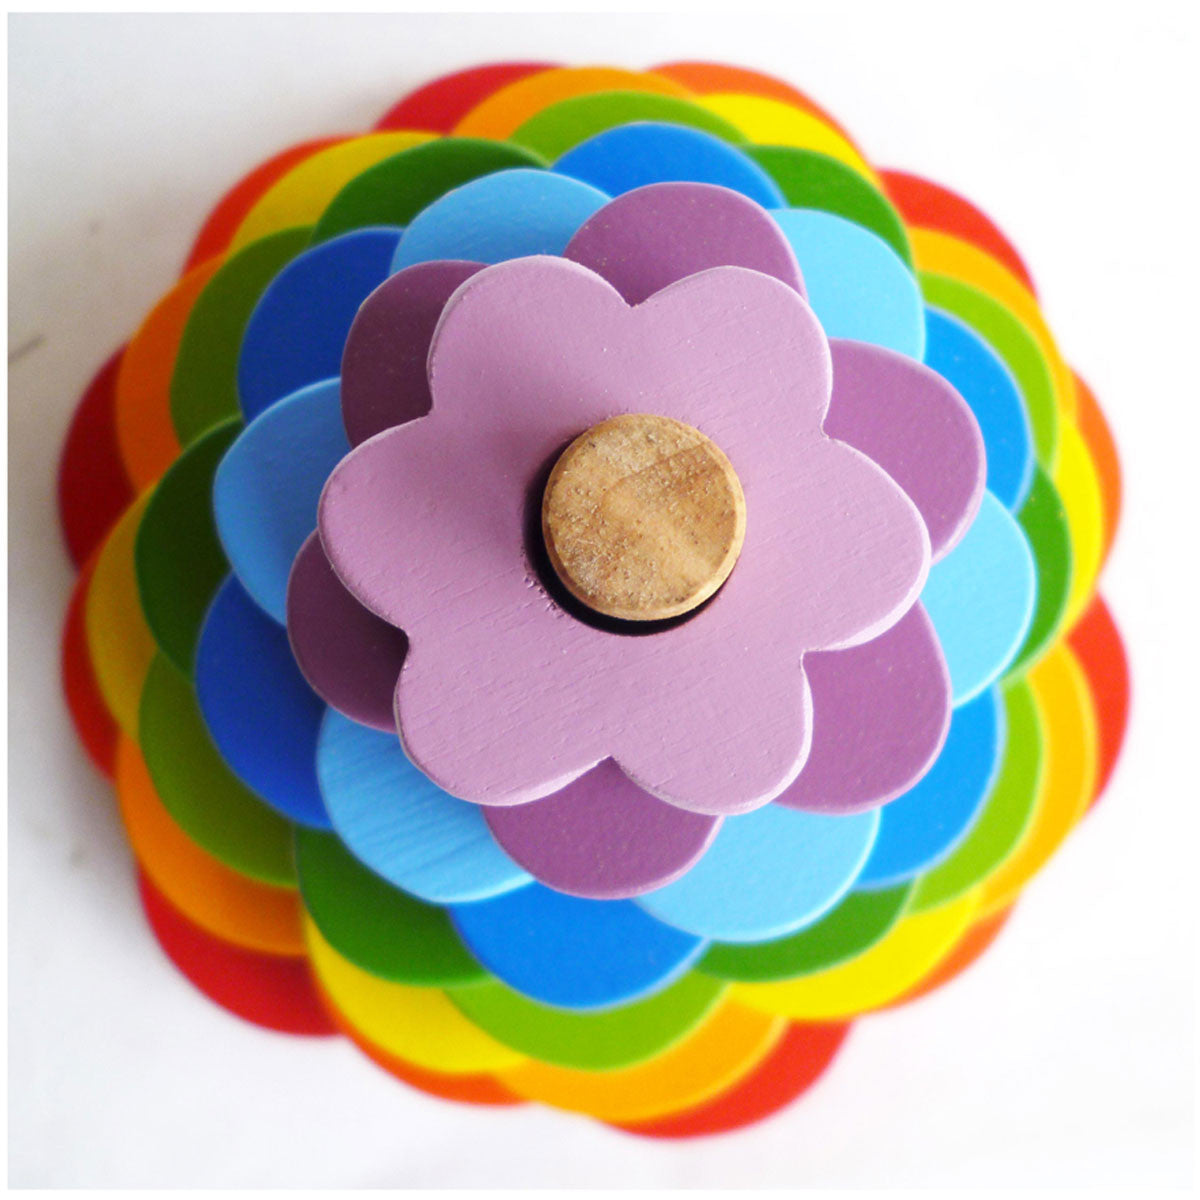 QToys Stacking Flower Toy   - QToys - Little Earth Nest - 3